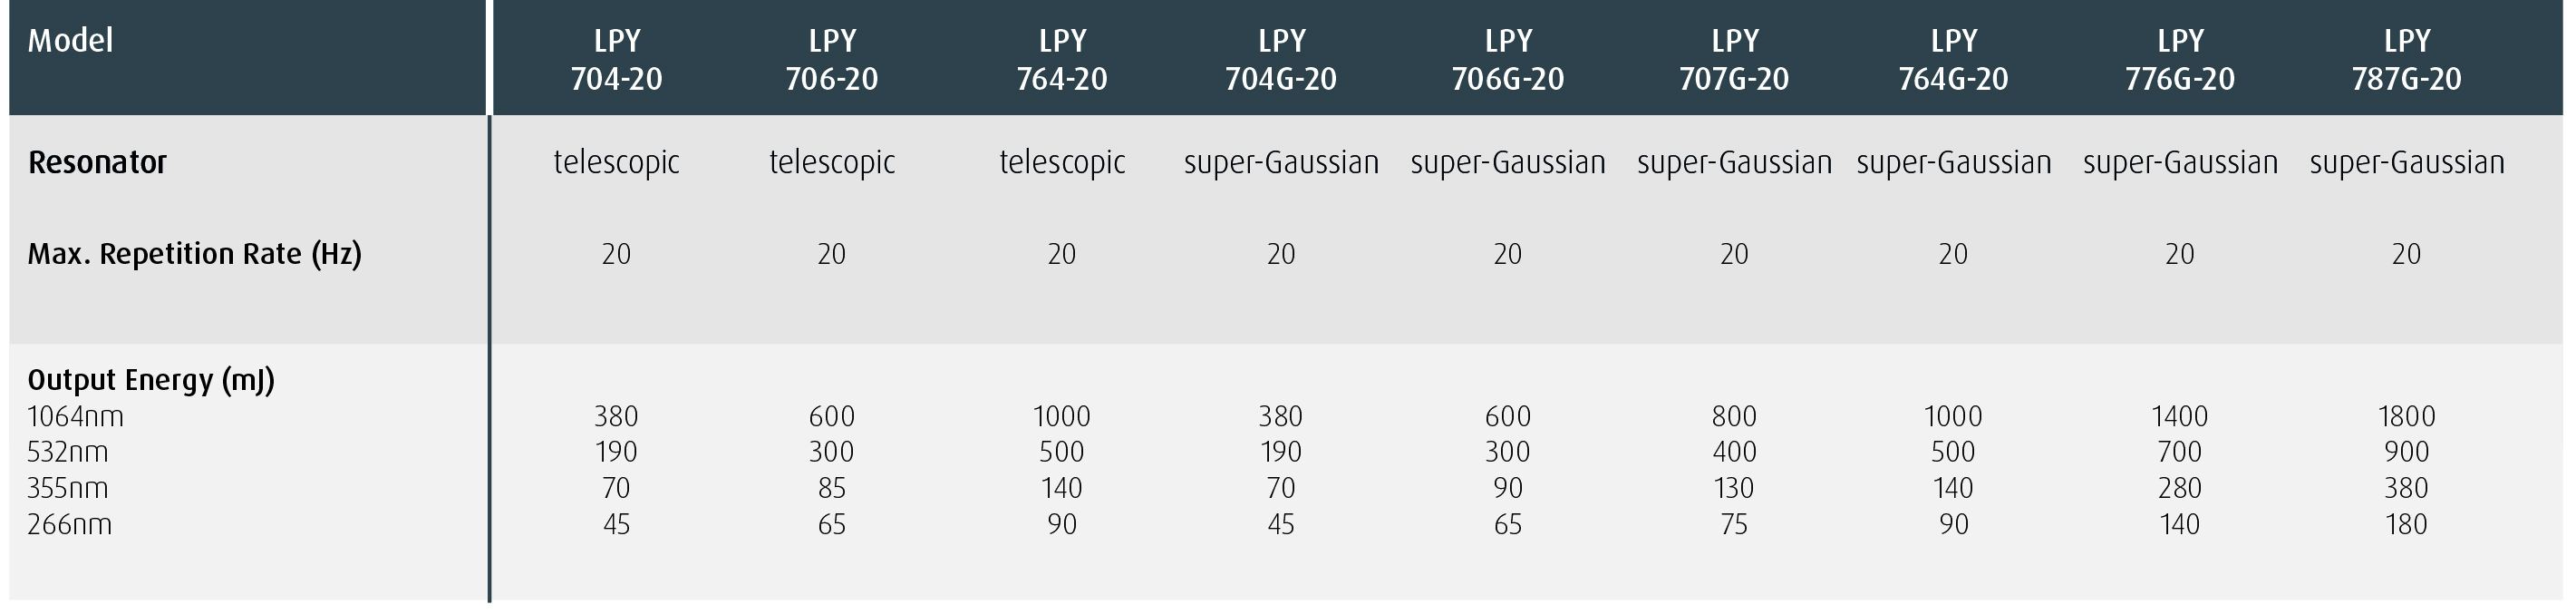 LPY700 20Hz Low Repetition Rate Range Specification Highlights